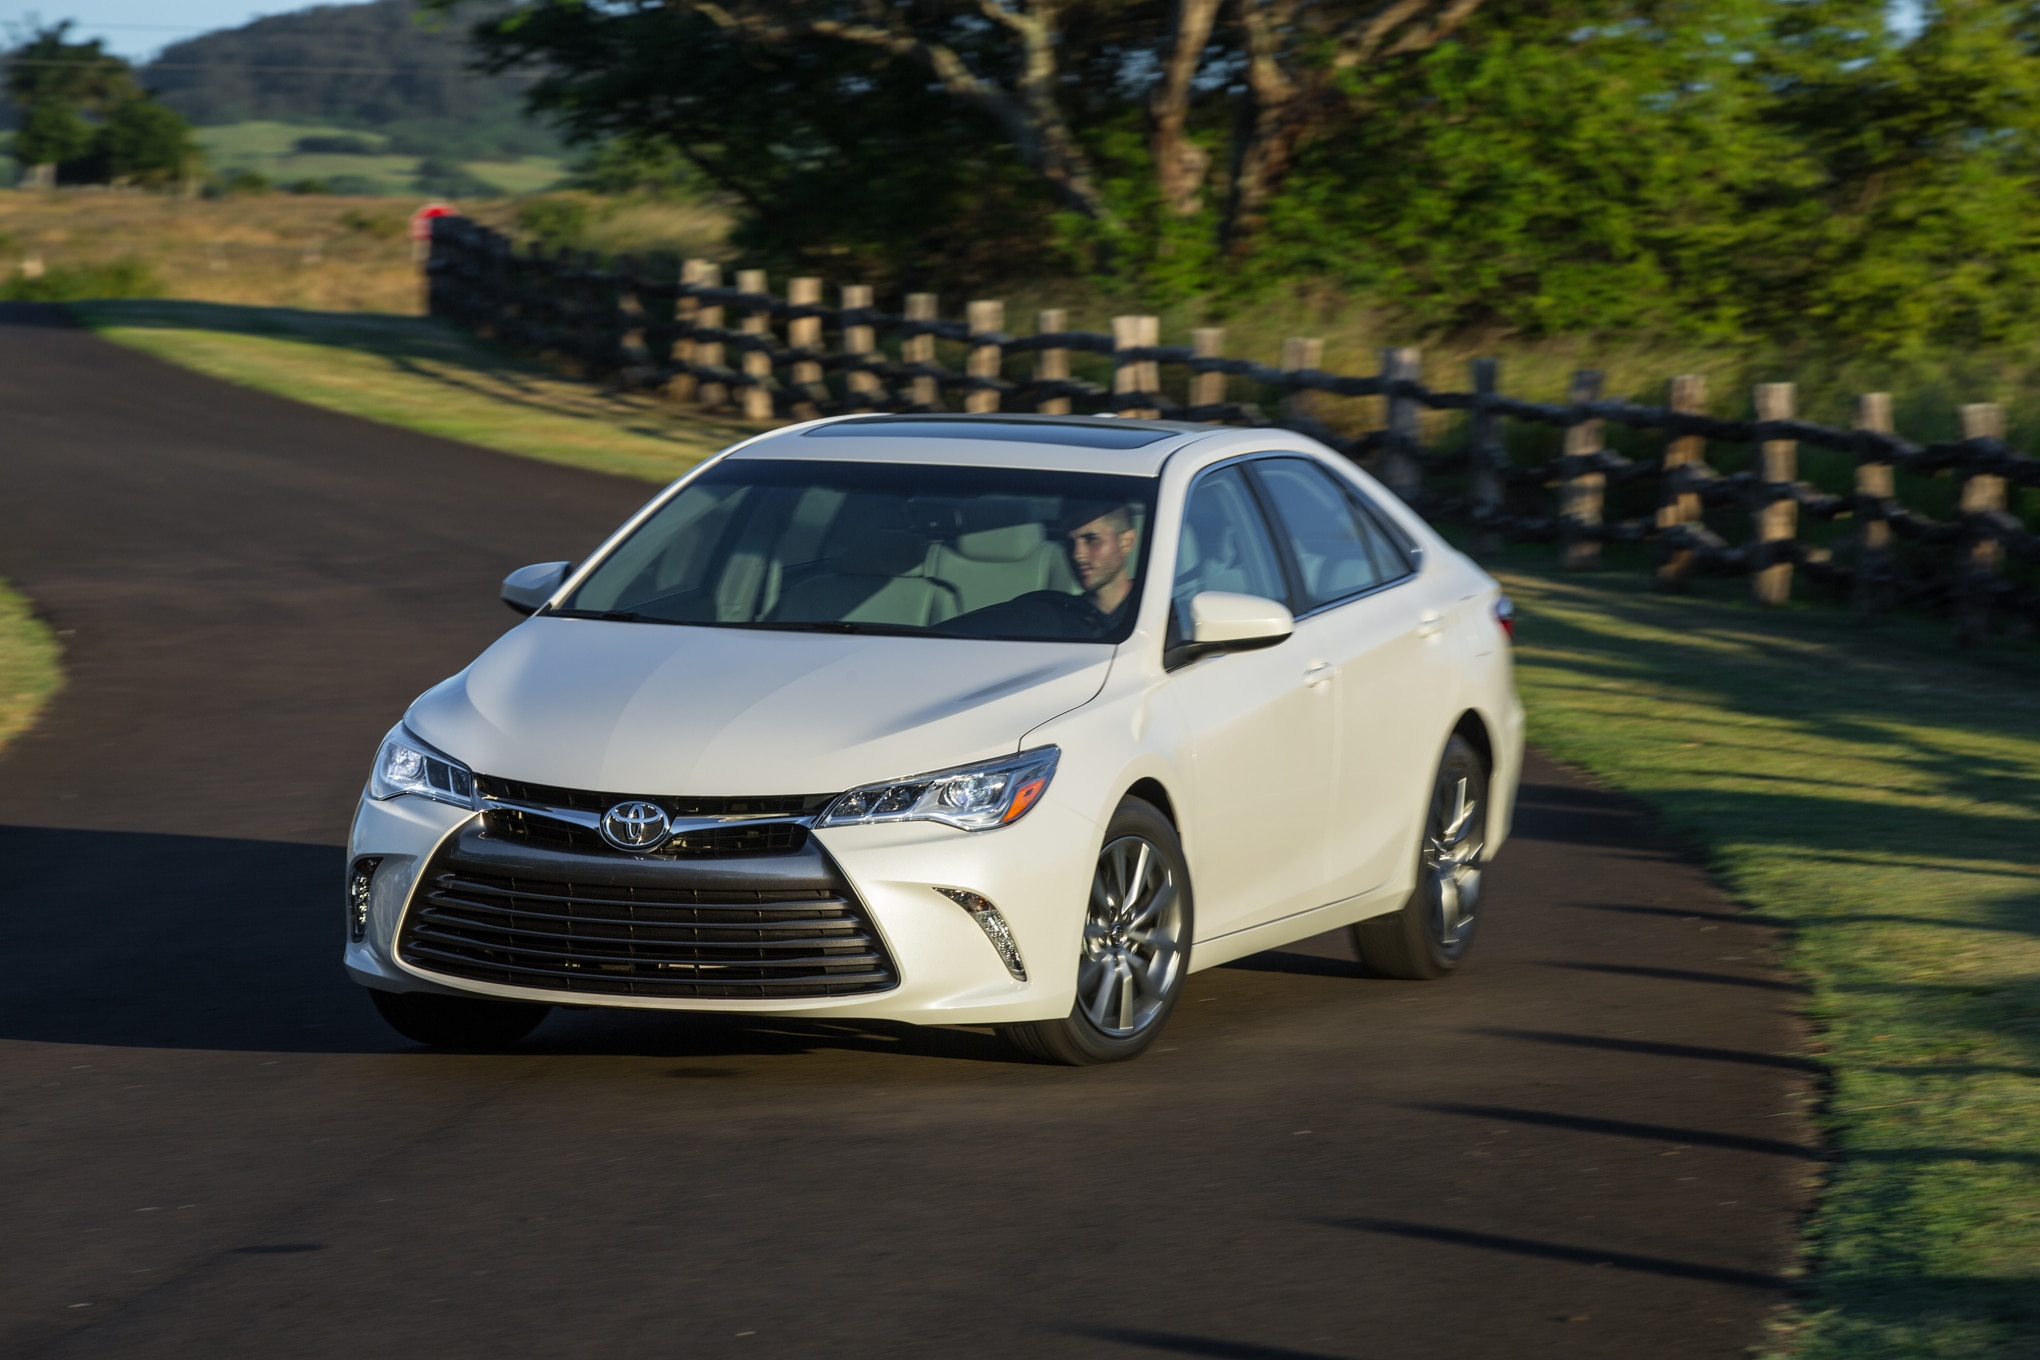 le at sale inventory singer auto for camry sales oh details toyota caldwell in